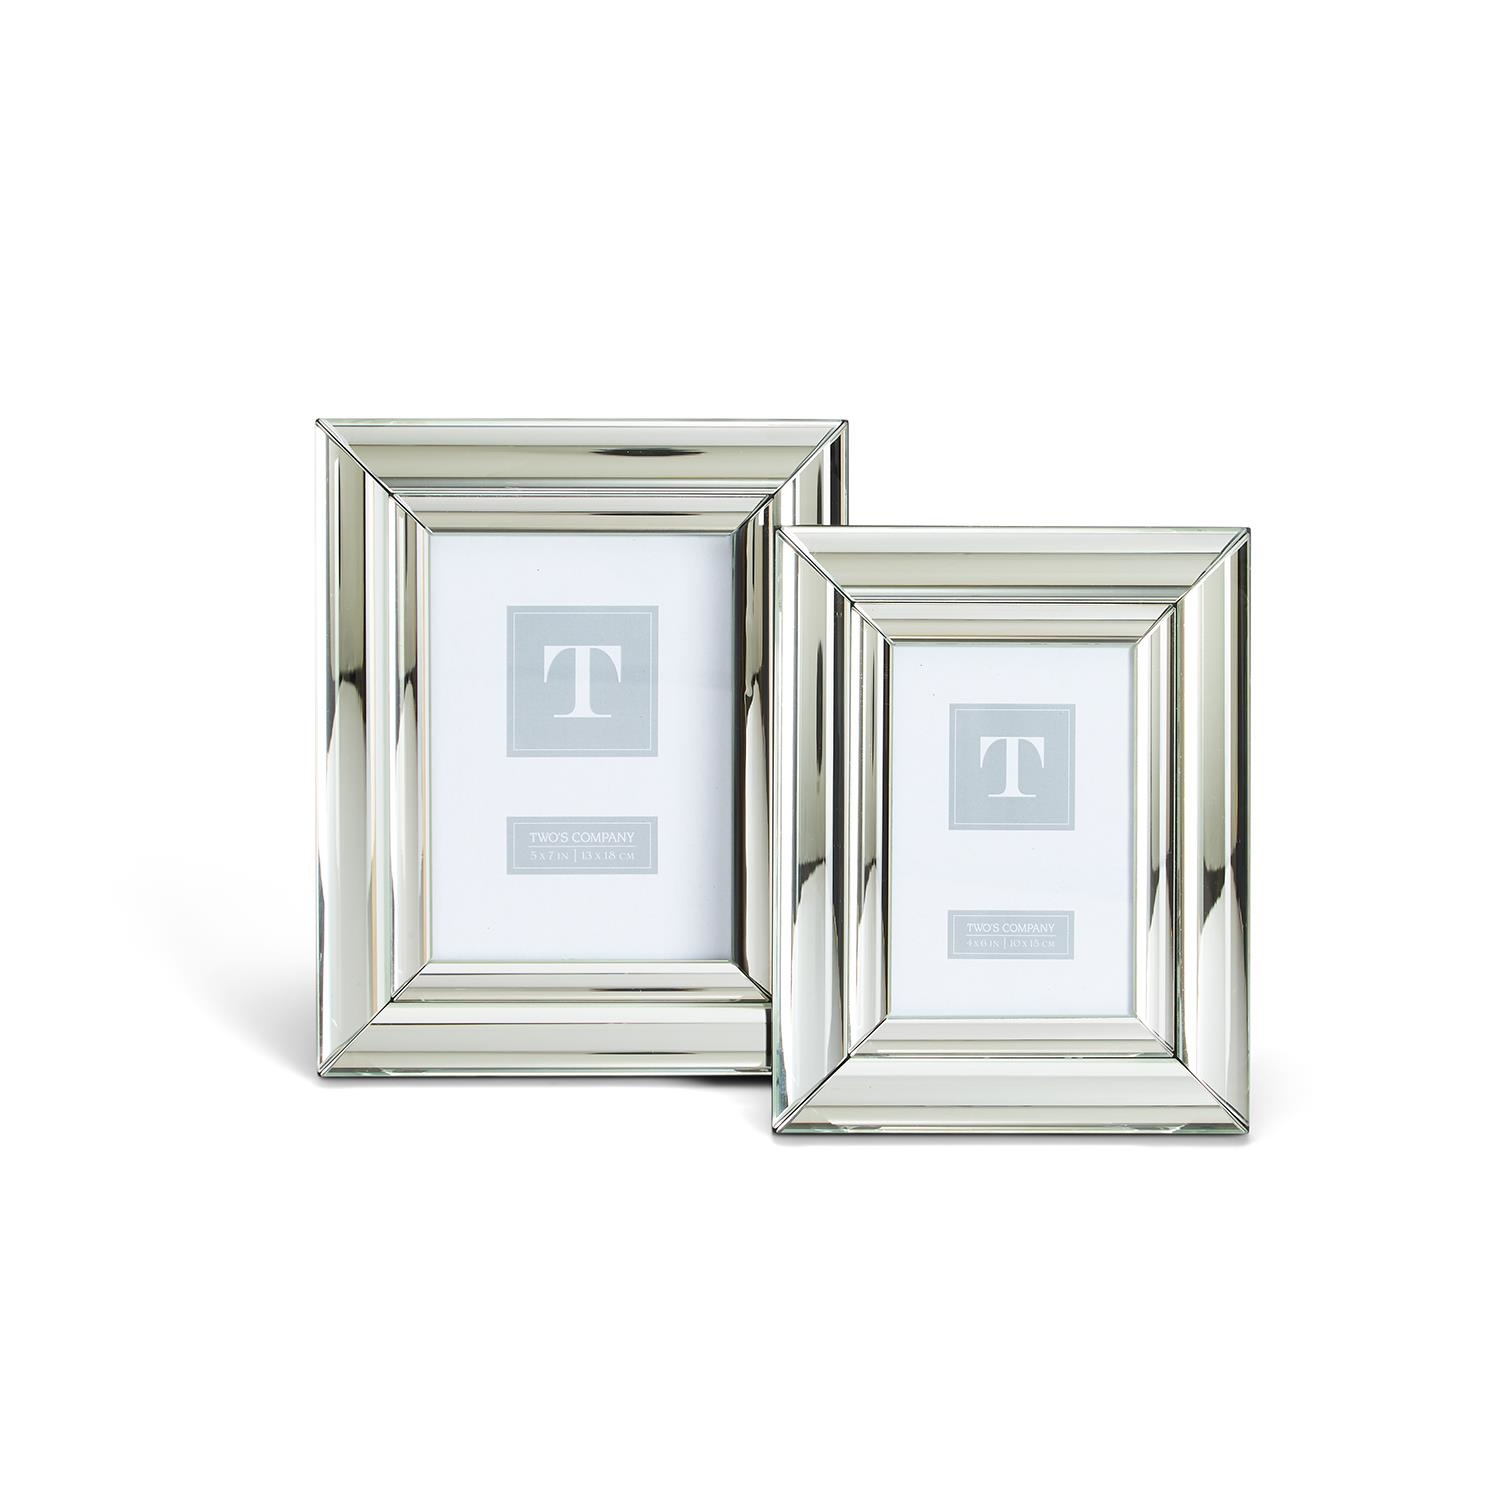 Two's Company Silver Mirror Frame